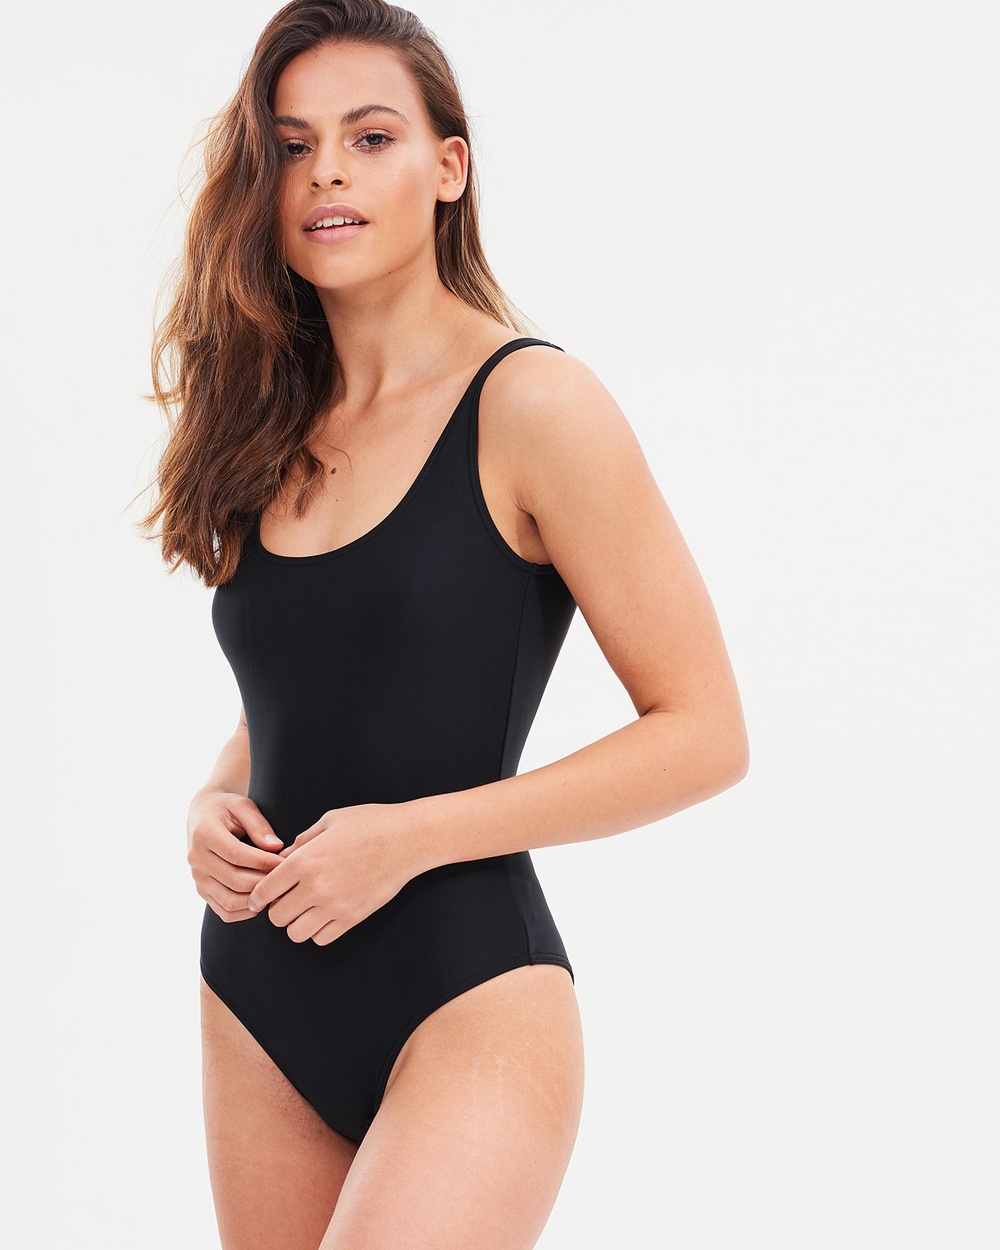 Rip Curl Surf Essentials Easy One Piece One-Piece / Swimsuit Black Surf Essentials Easy One-Piece